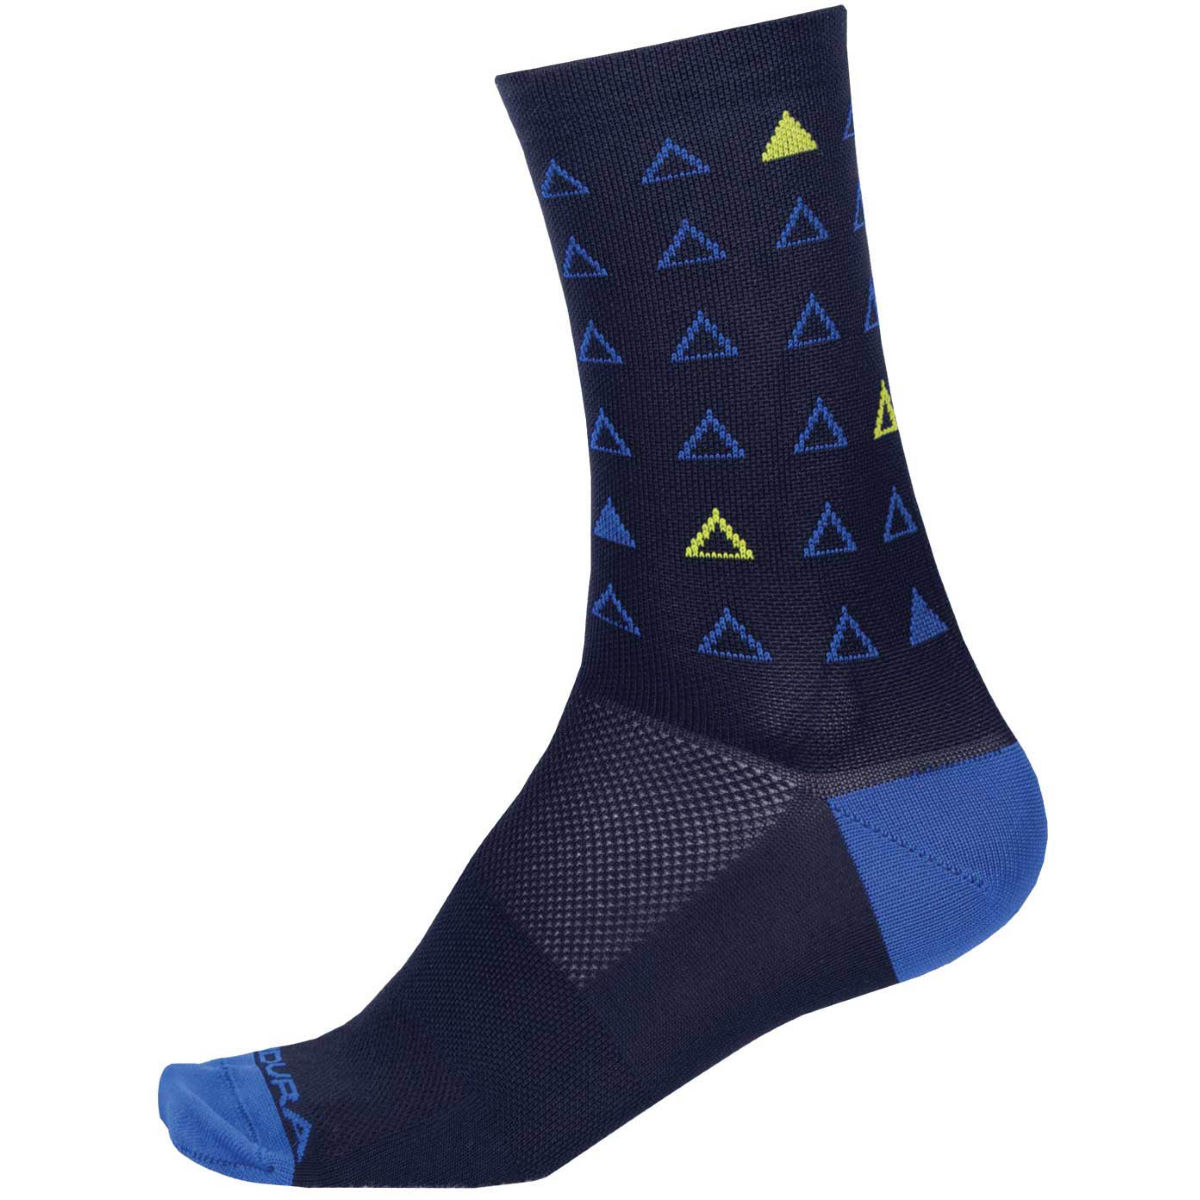 Endura graphics socks cycling socks trianglulate ss18 e1175na s m 0